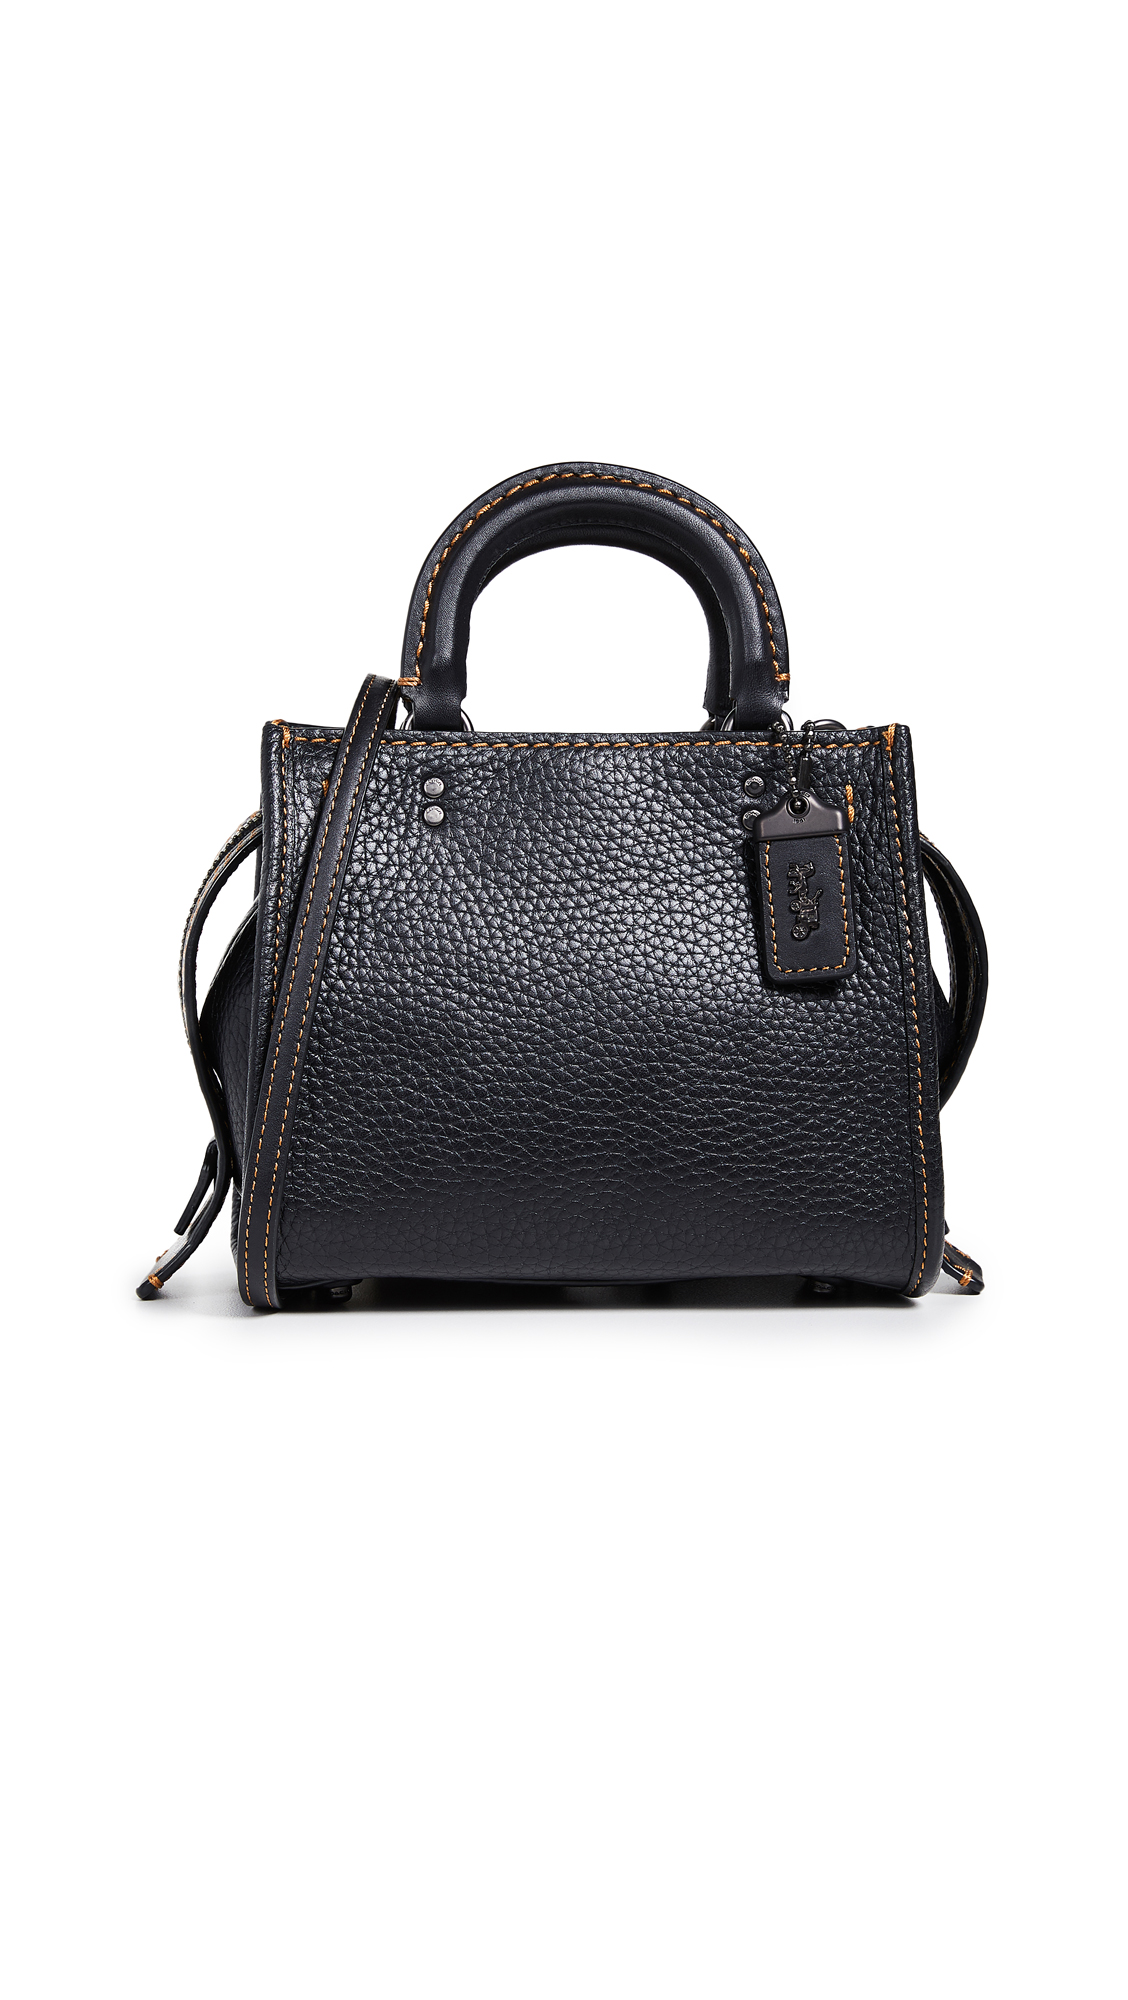 1941 Glovetanned Pebble Rogue Bag 17, Black